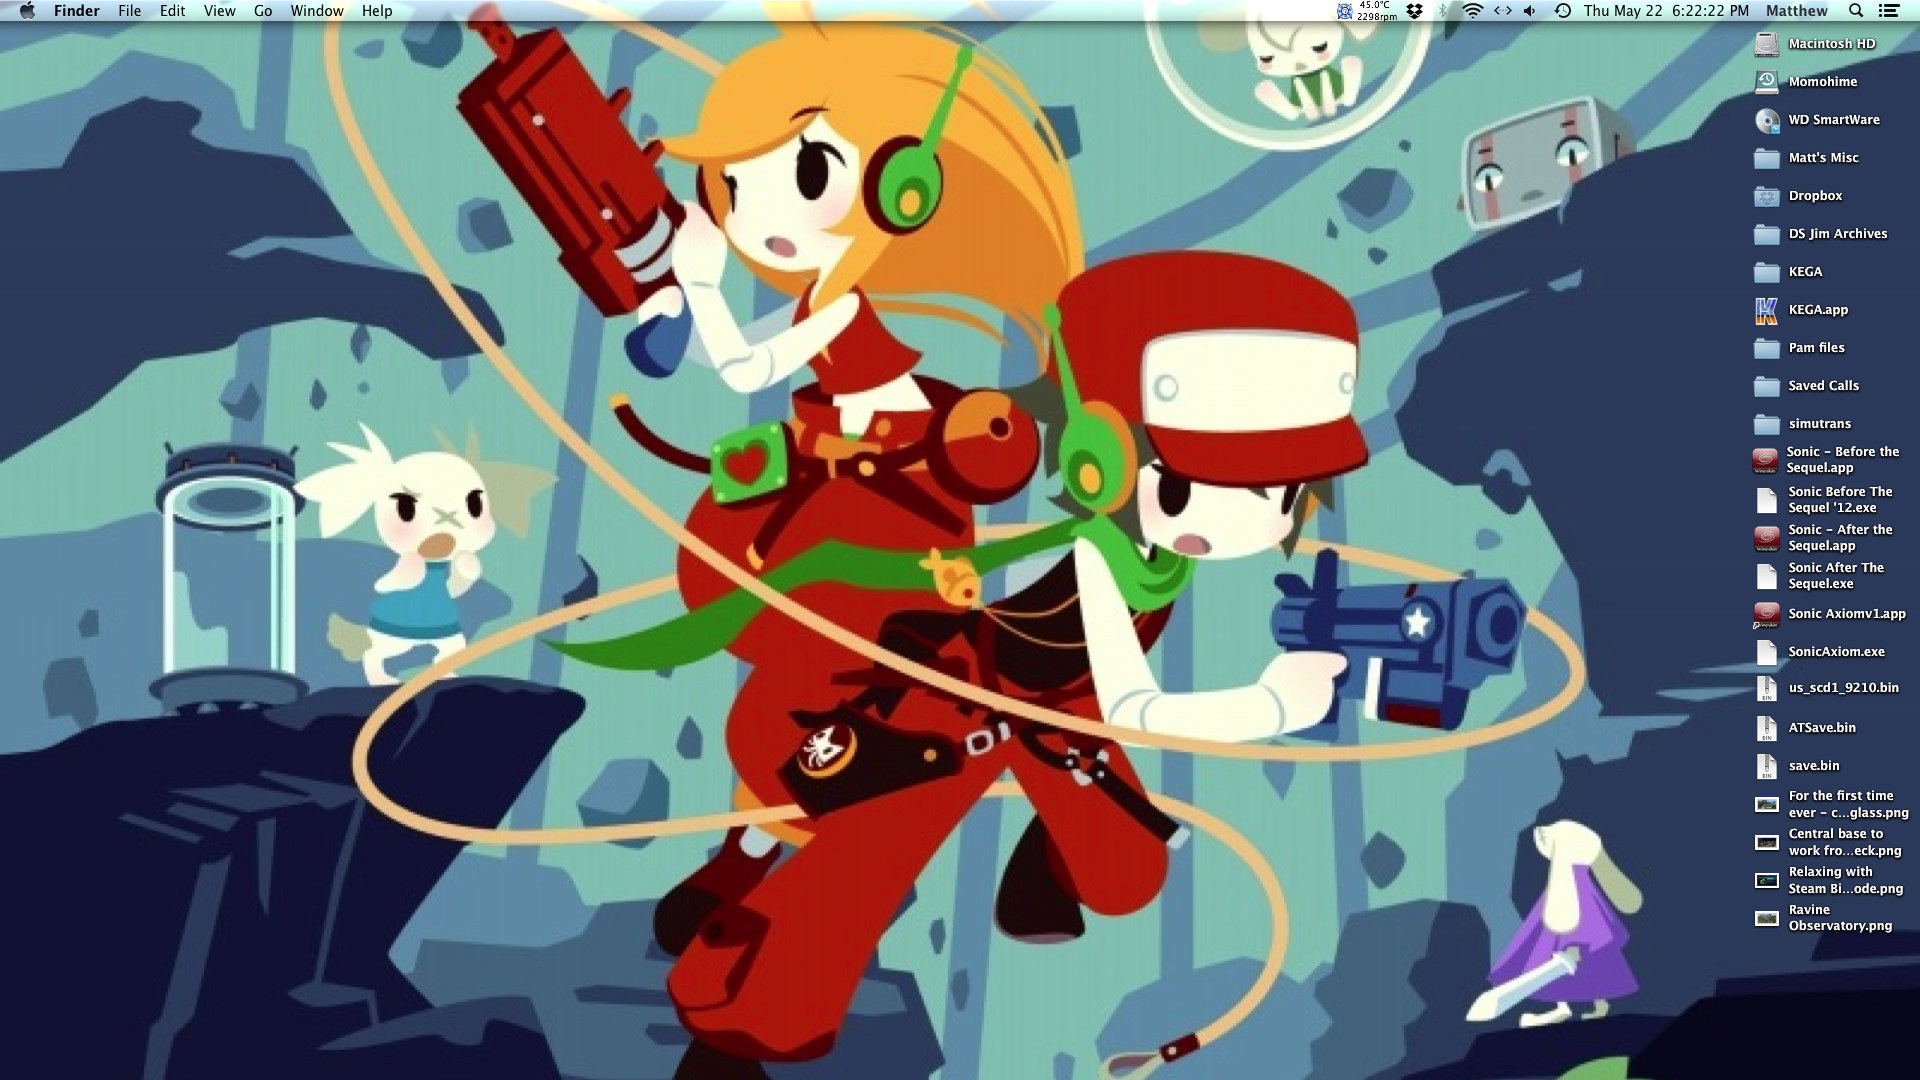 1920x1080 ... Video The Lone Wolf Blog Current Mac wallpaper Cave Story ...